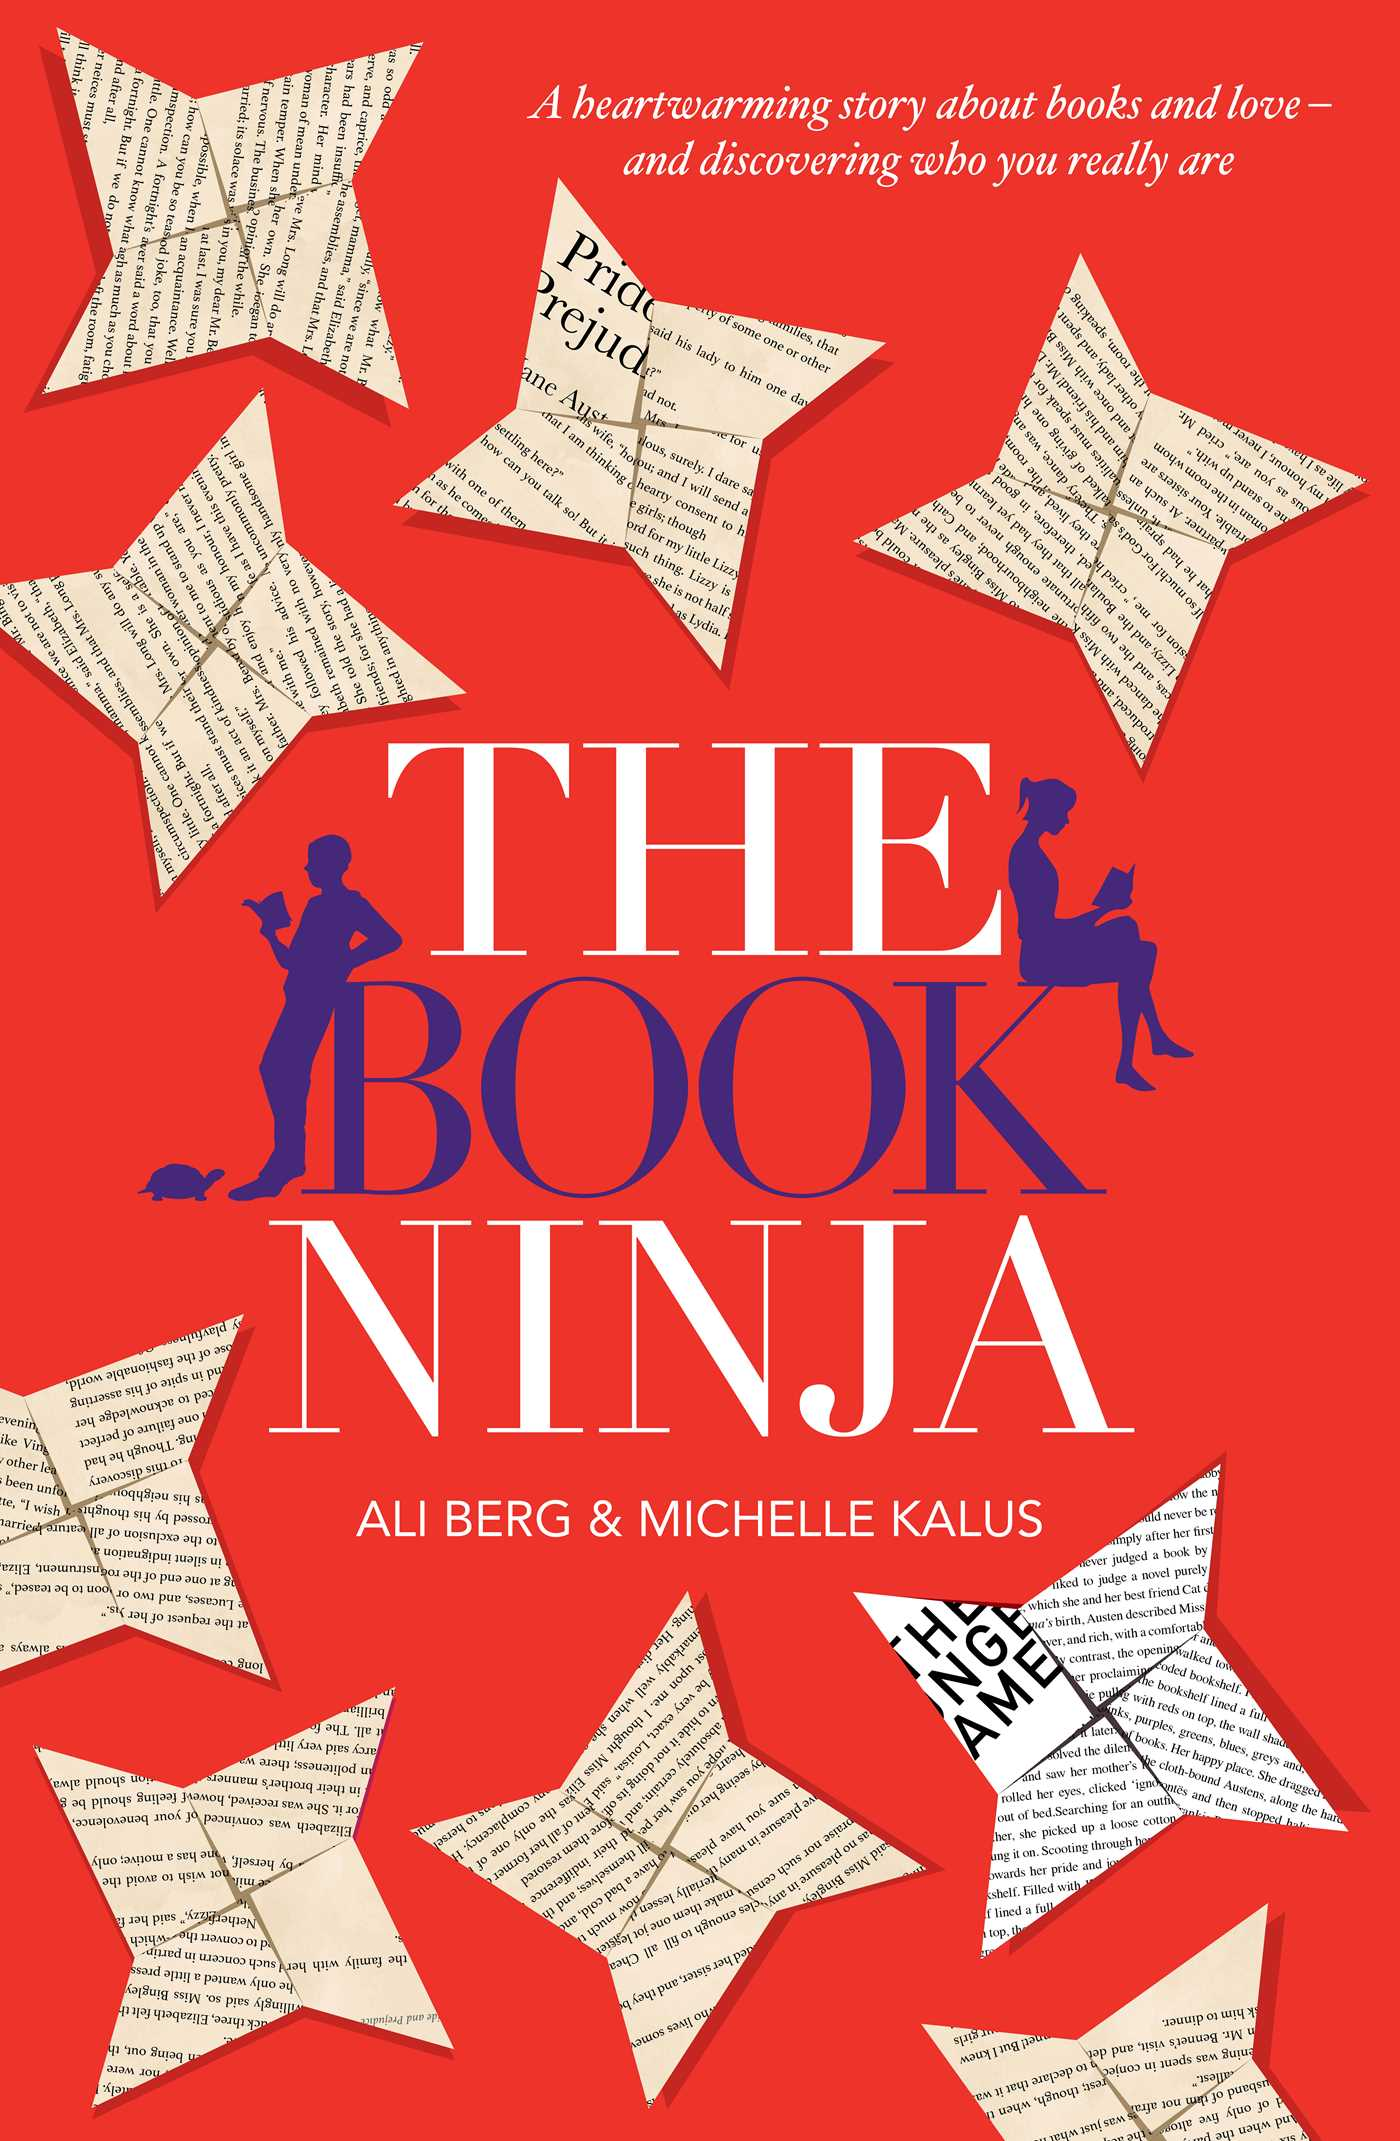 The book ninja - bibliophile review